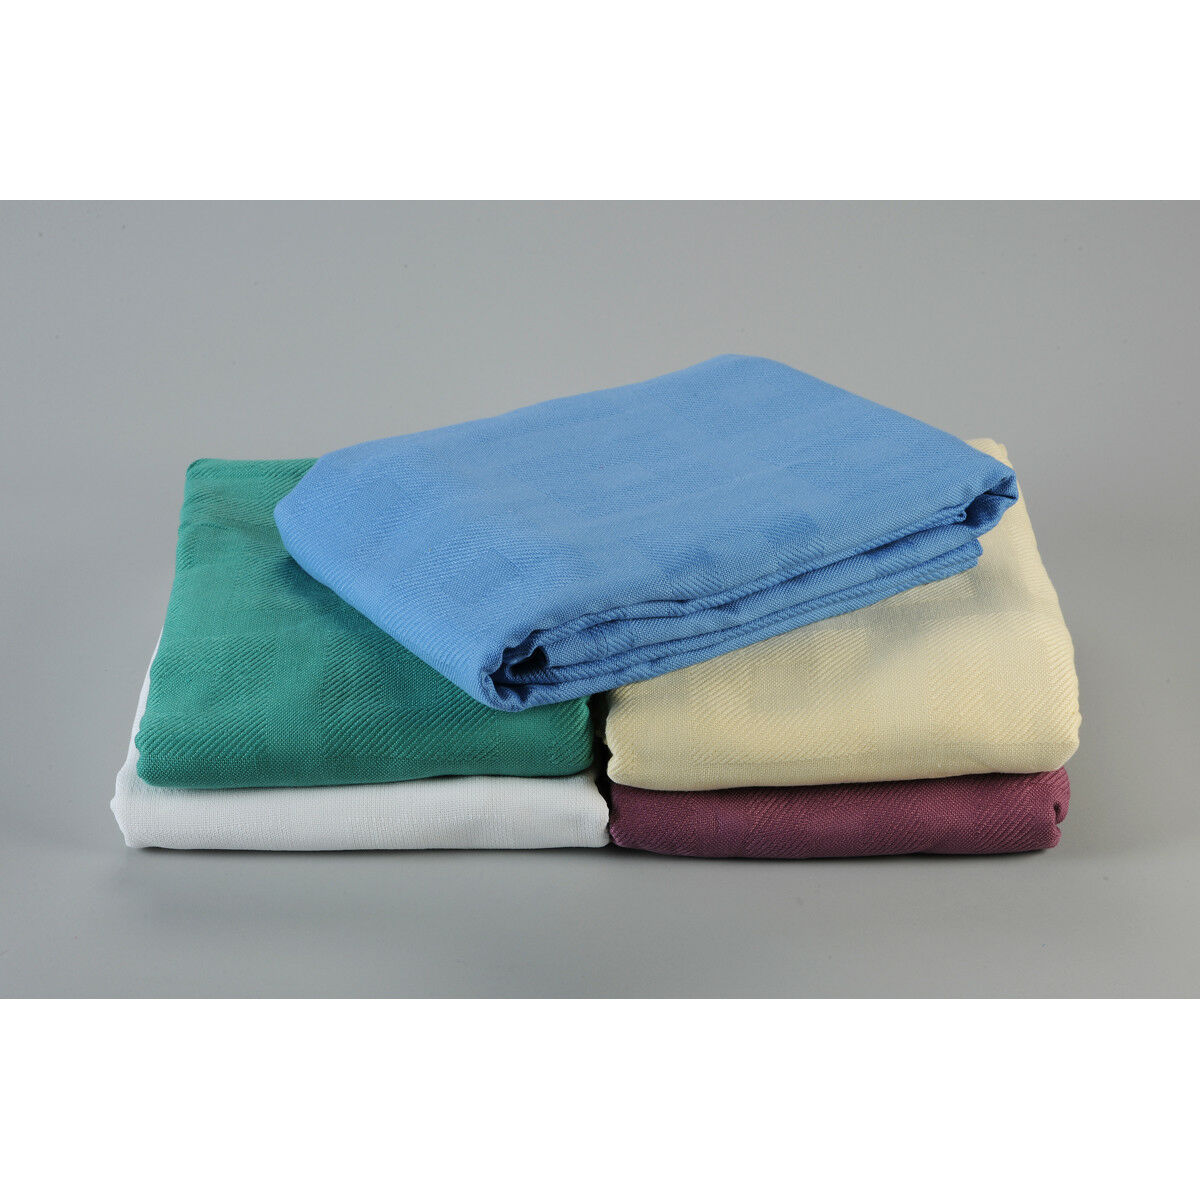 Baby Bettwäsche Set 70x140 Royal 74 X 108 4 Lb Bluee Bone Raspberry Teal Snag Therm